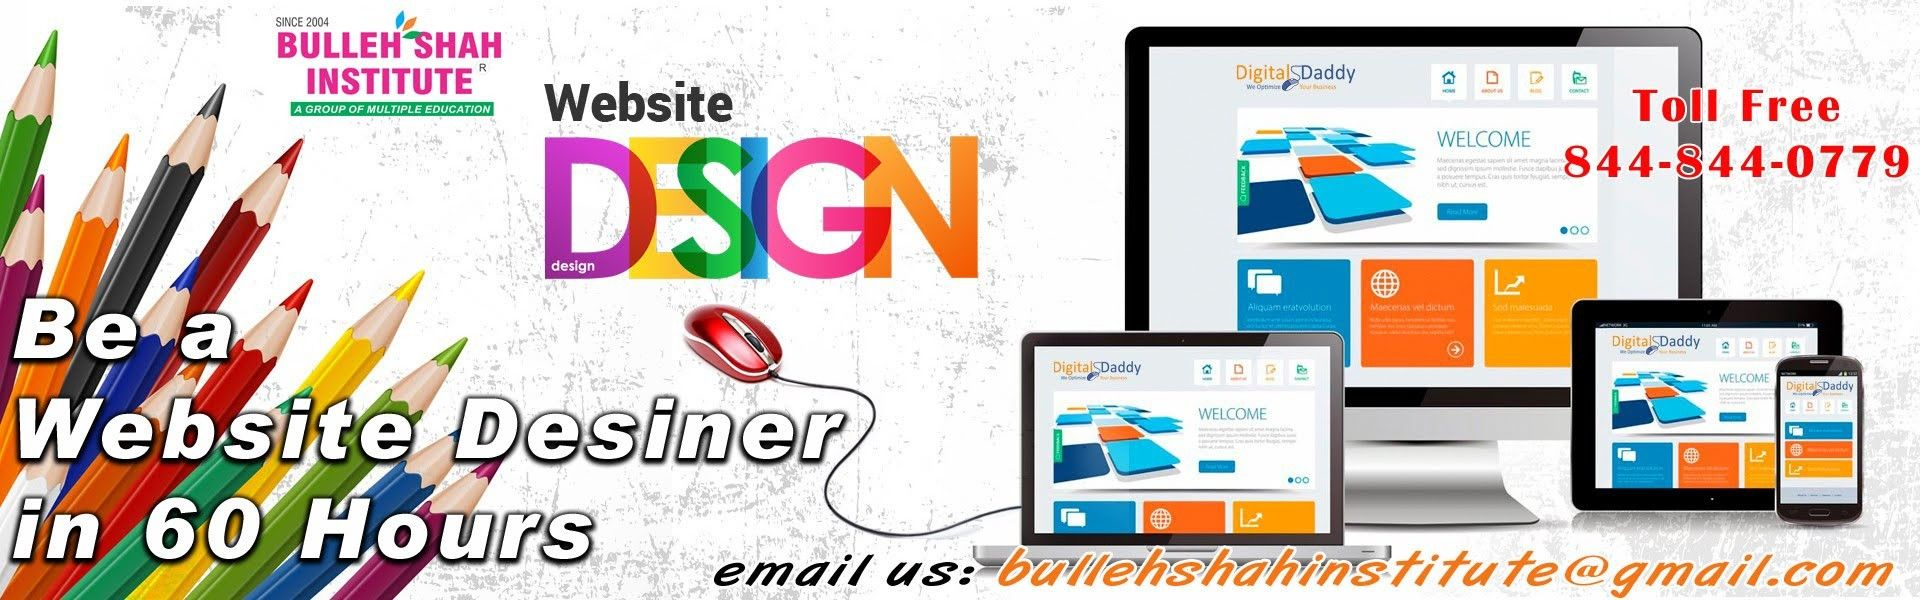 If You Want To Be A Website Designer Then Come At Our Office As Soon As Course Start Contact Us Bulleh Shah Institute Badh Website Design Help Desk Website